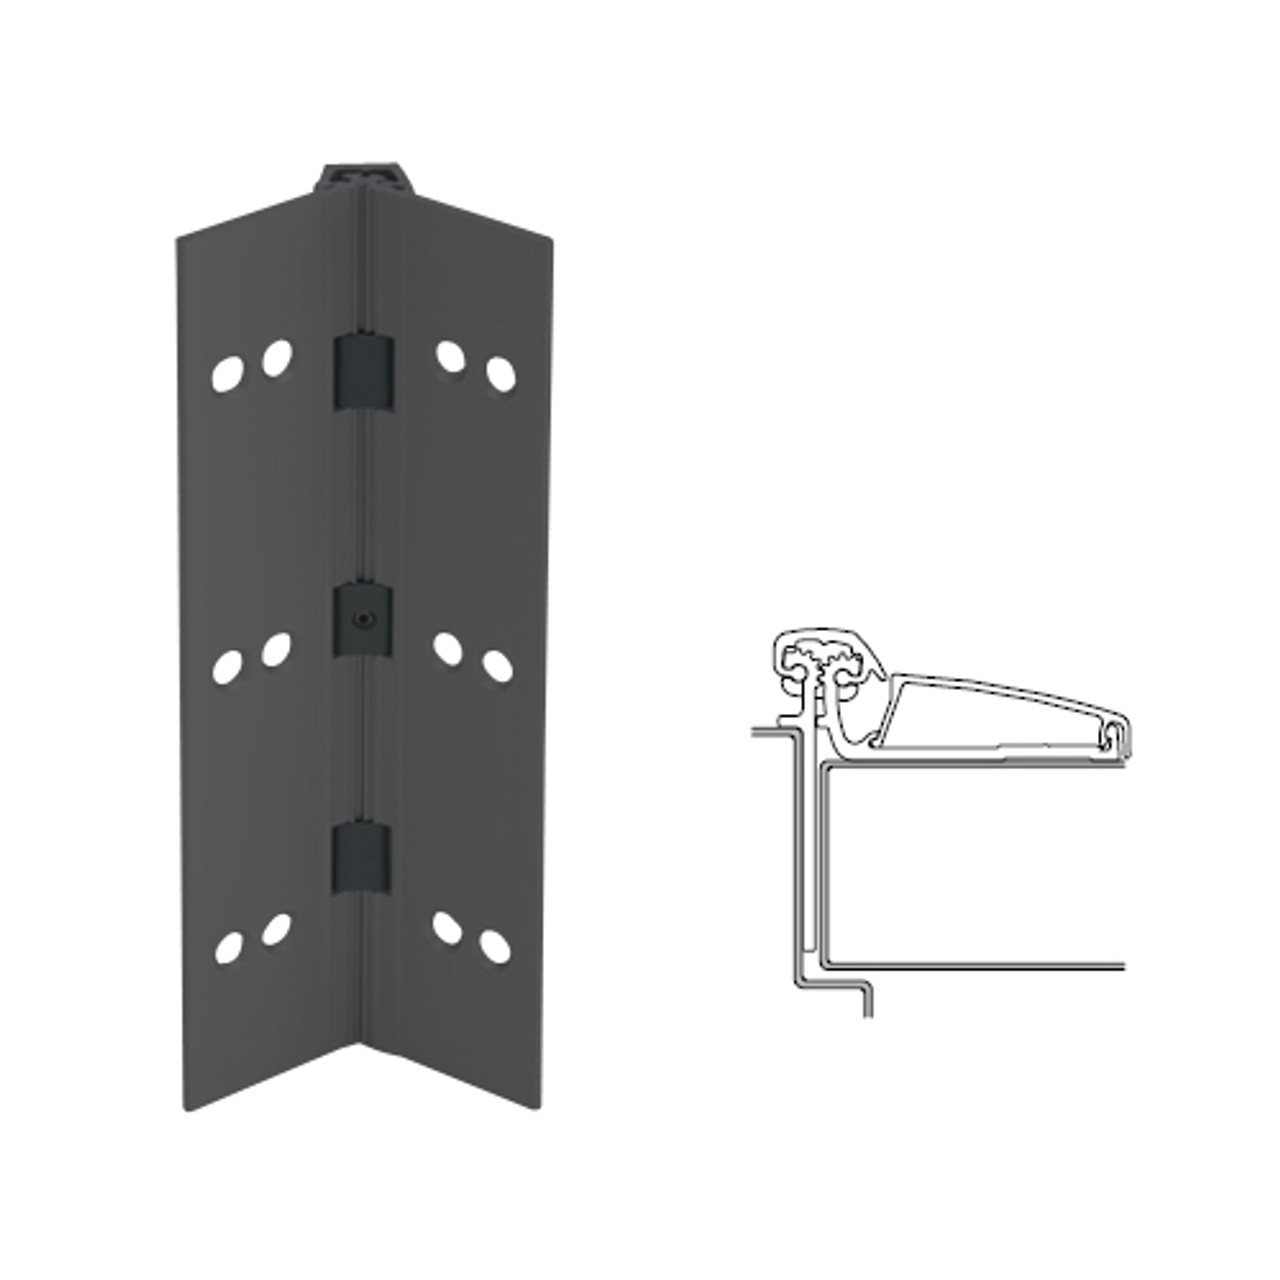 046XY-315AN-95-WD IVES Adjustable Half Surface Continuous Geared Hinges with Wood Screws in Anodized Black